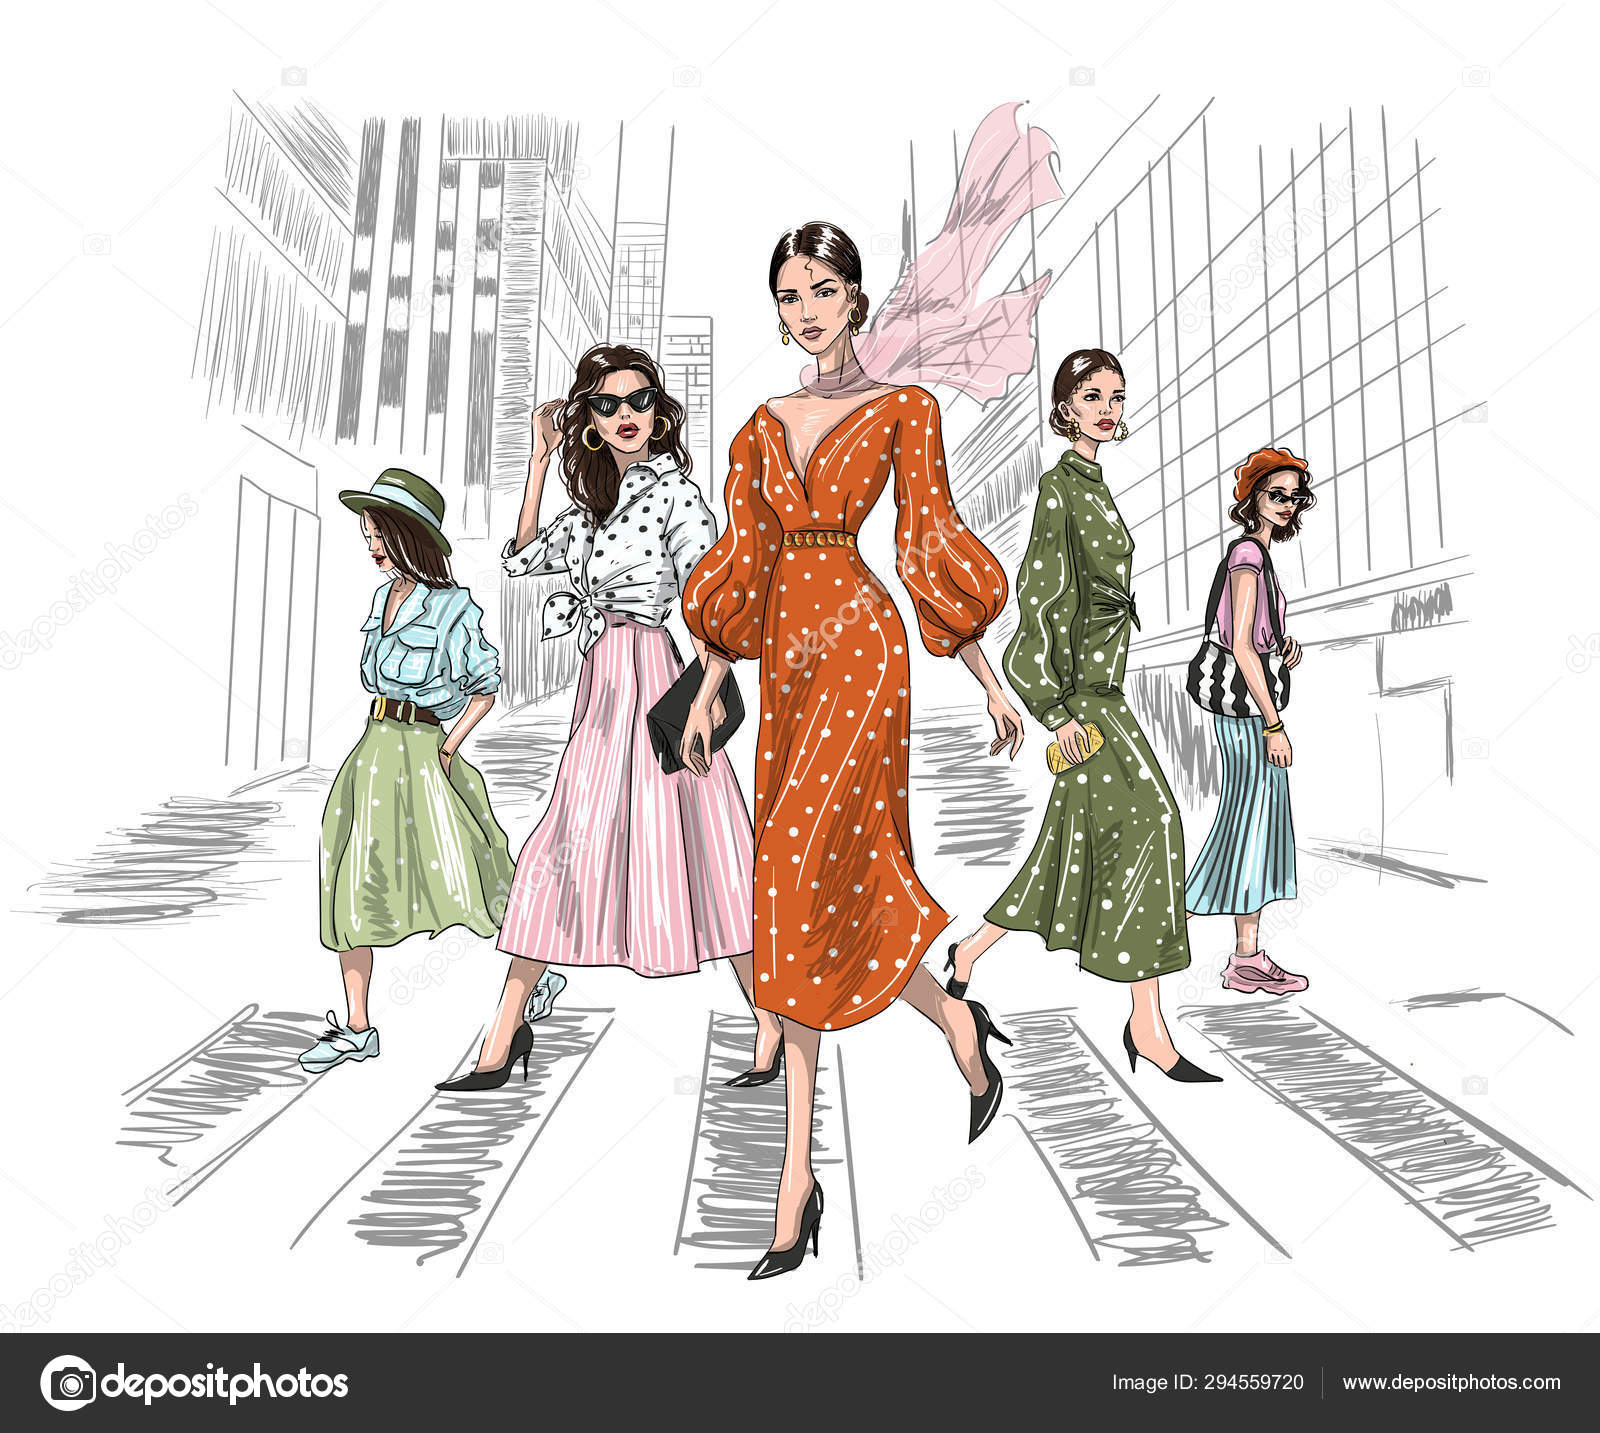 ᐈ ramp walk stock pictures royalty free ramp models backgrounds download on depositphotos ᐈ ramp walk stock pictures royalty free ramp models backgrounds download on depositphotos